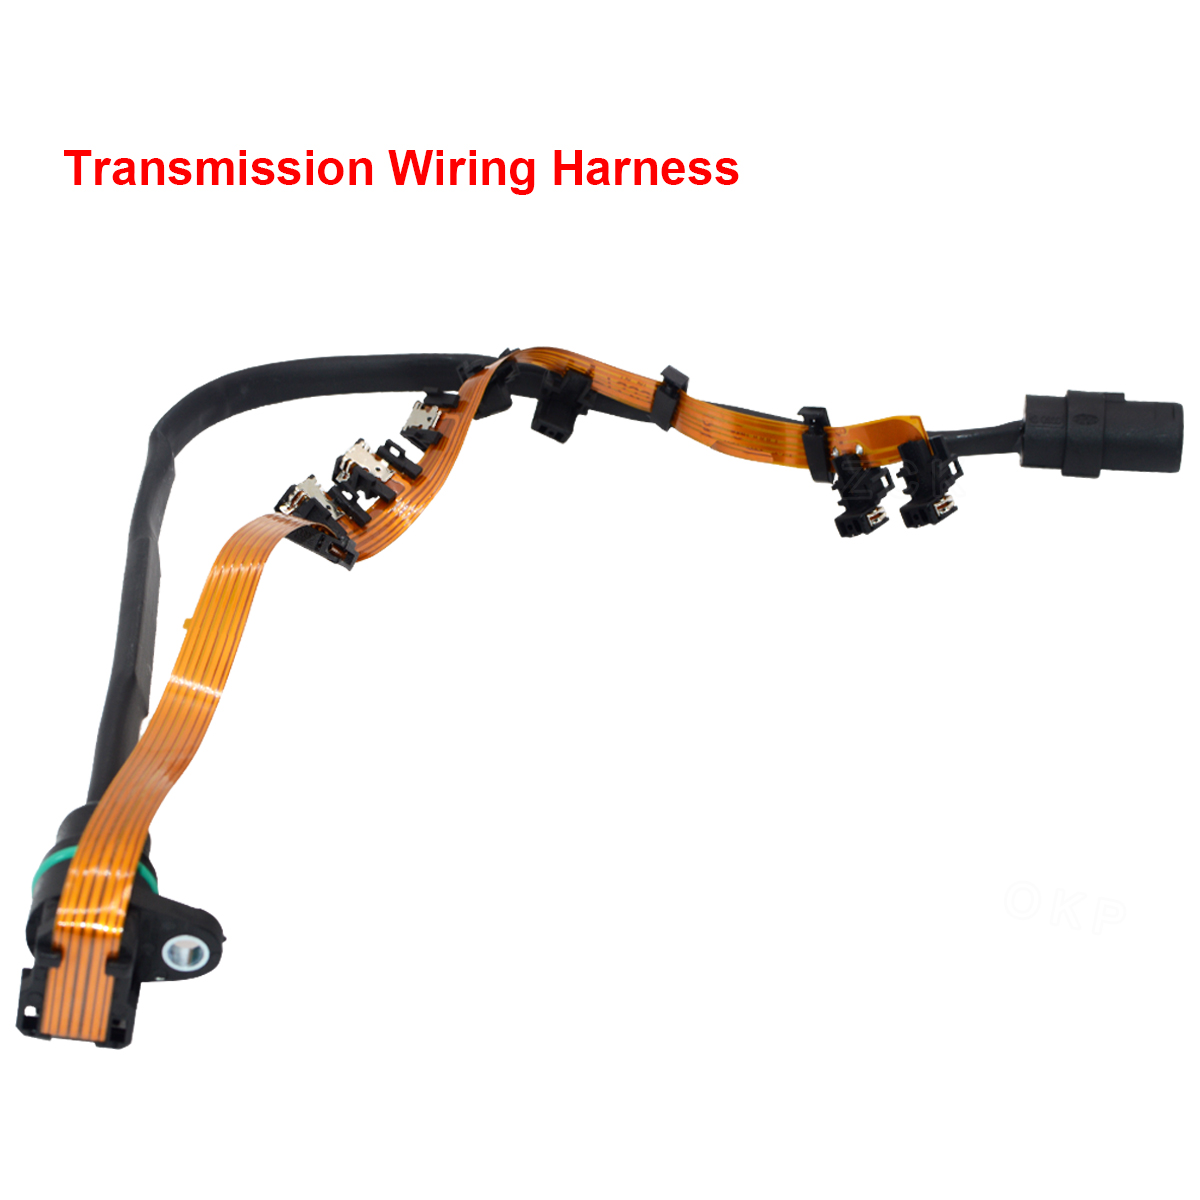 01m Wiring Harness For Vw Audi 095 096 097 Transmission Replace Oem Replacing 01m927365 Us